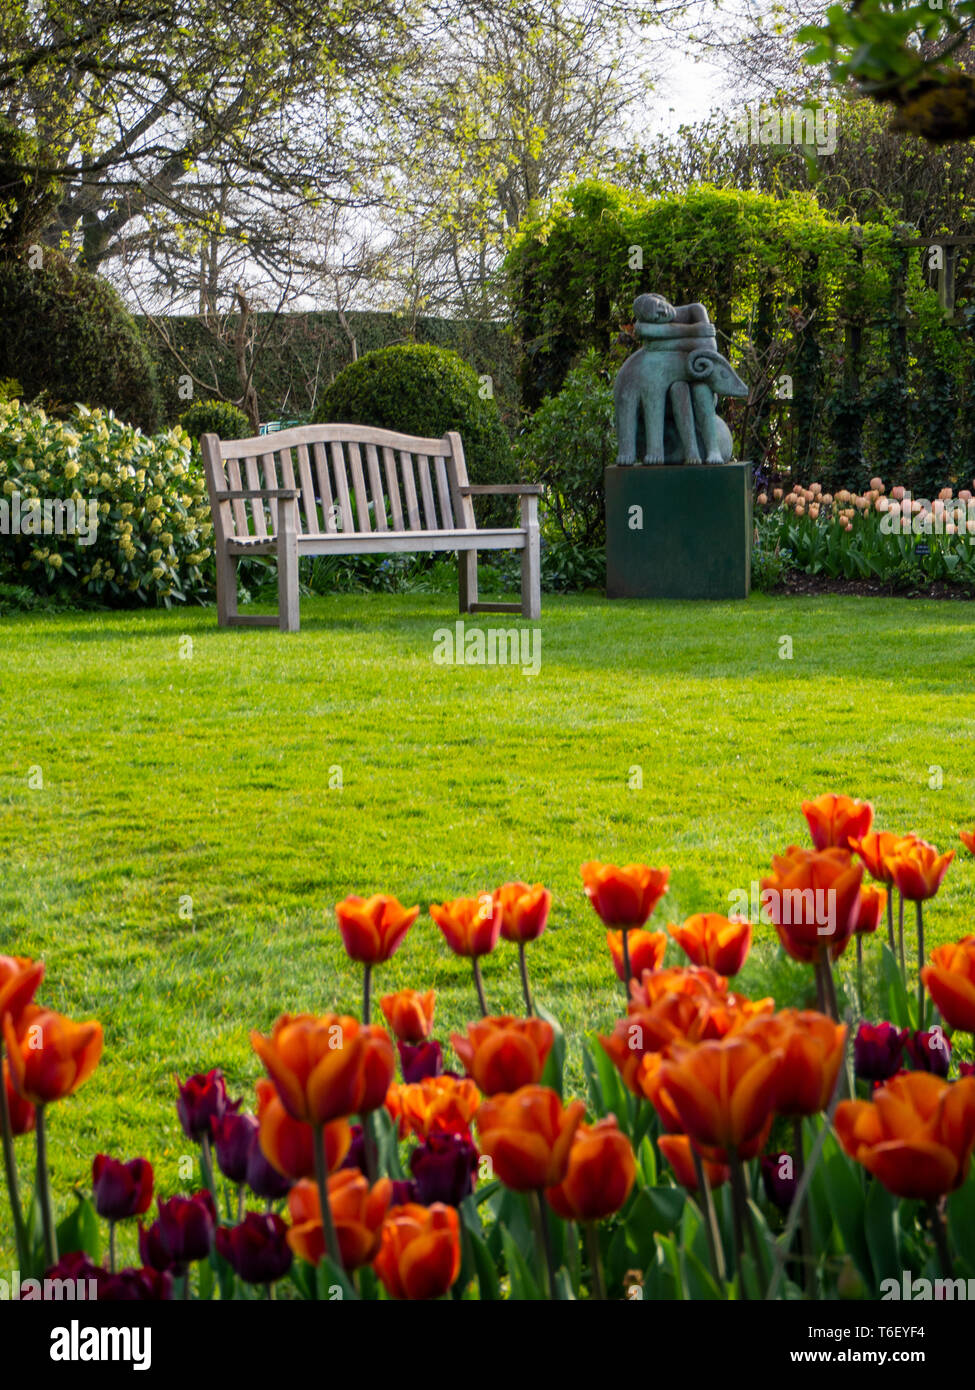 Chenies Manor Gardens in April, portrait view with Brown Sugar tulips in foreground; wooden bench seat and sleeping statue, trellis and sunny lawn. - Stock Image